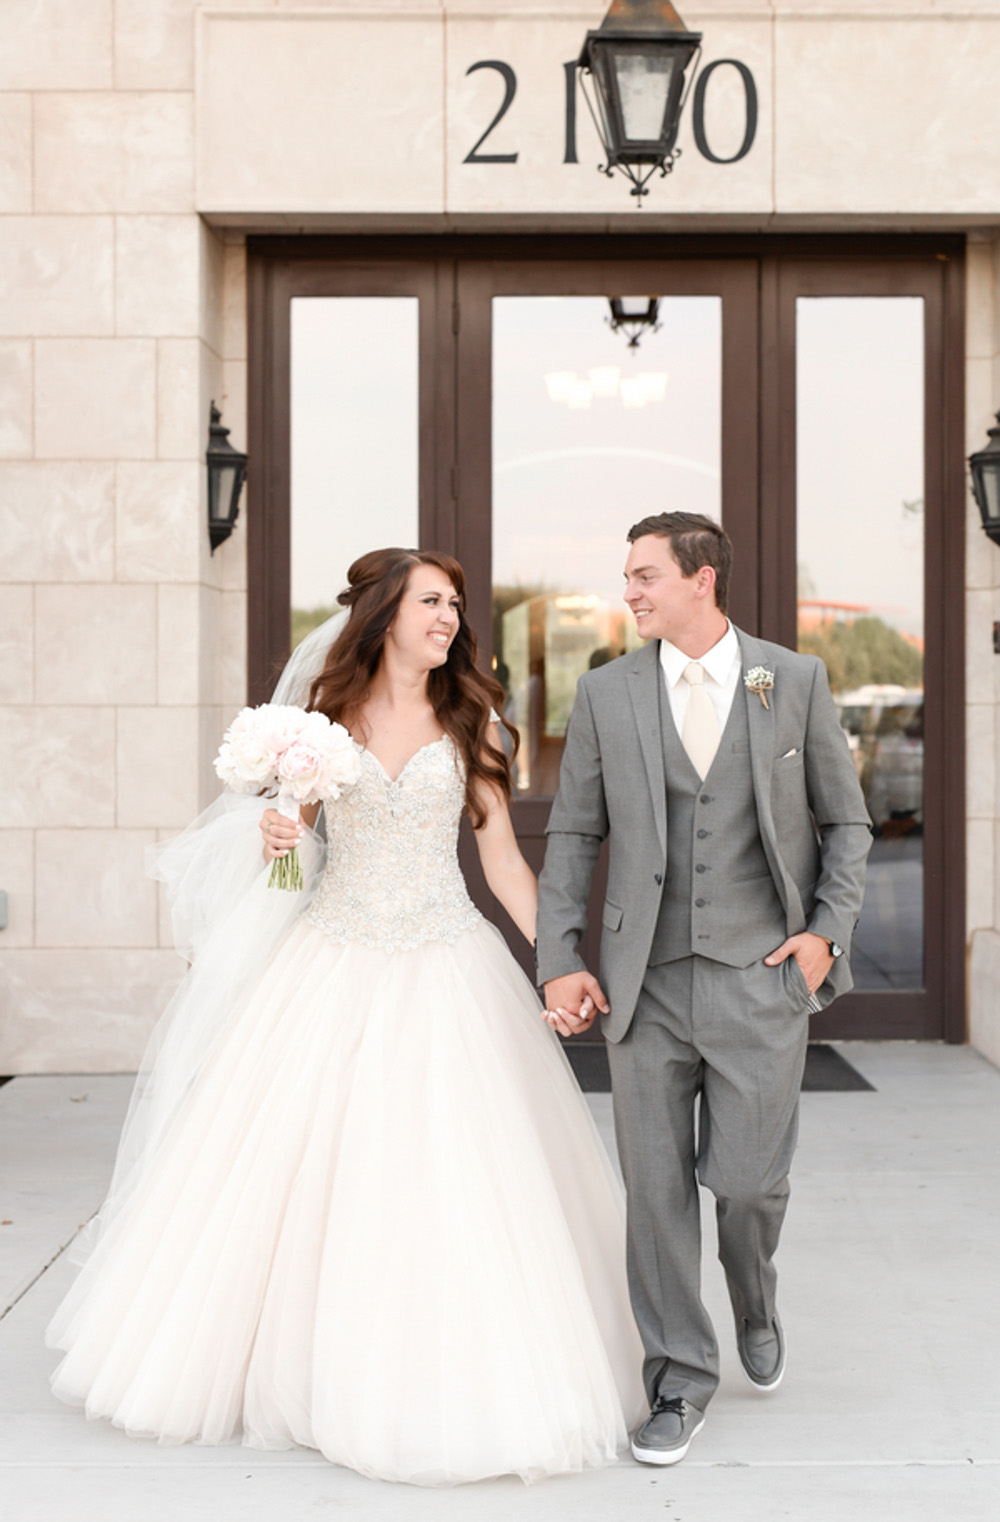 Blush and Grey Vintage Chic Inspired Wedding by Shively_Whitney_Monique_Hessler_Photography (16)